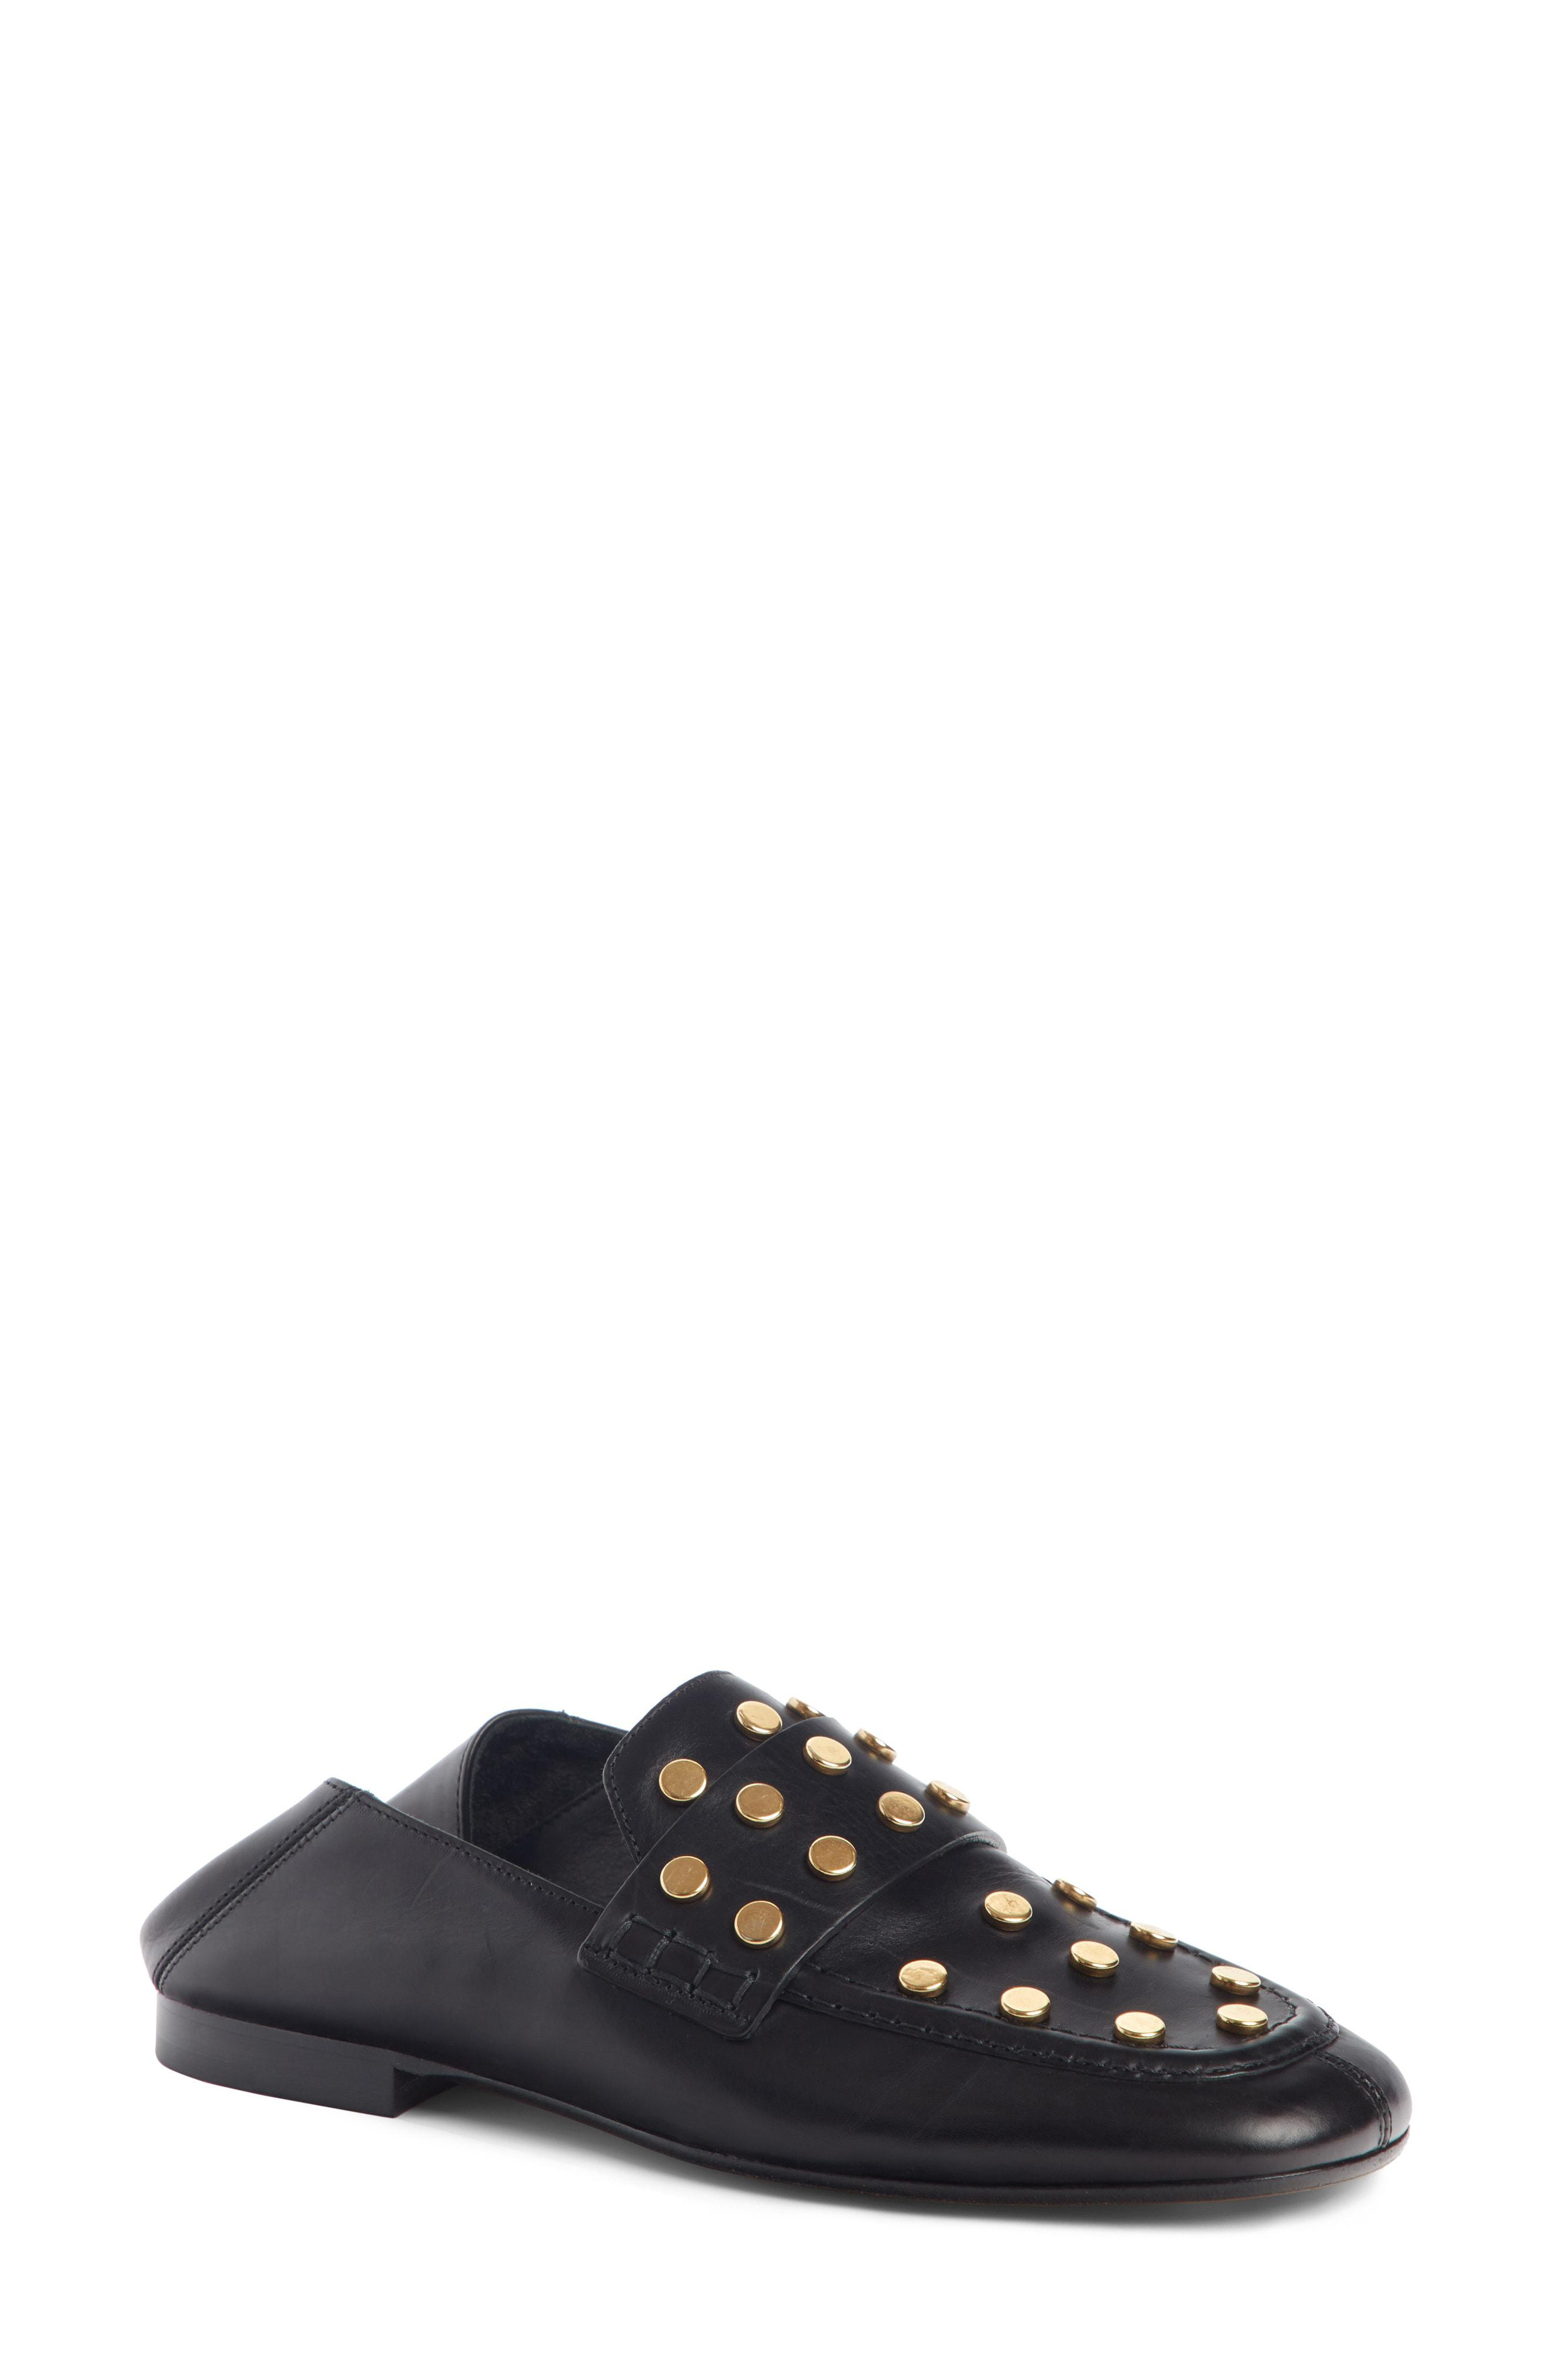 48084d30133 Lyst - Isabel Marant Feenie Loafers in Black